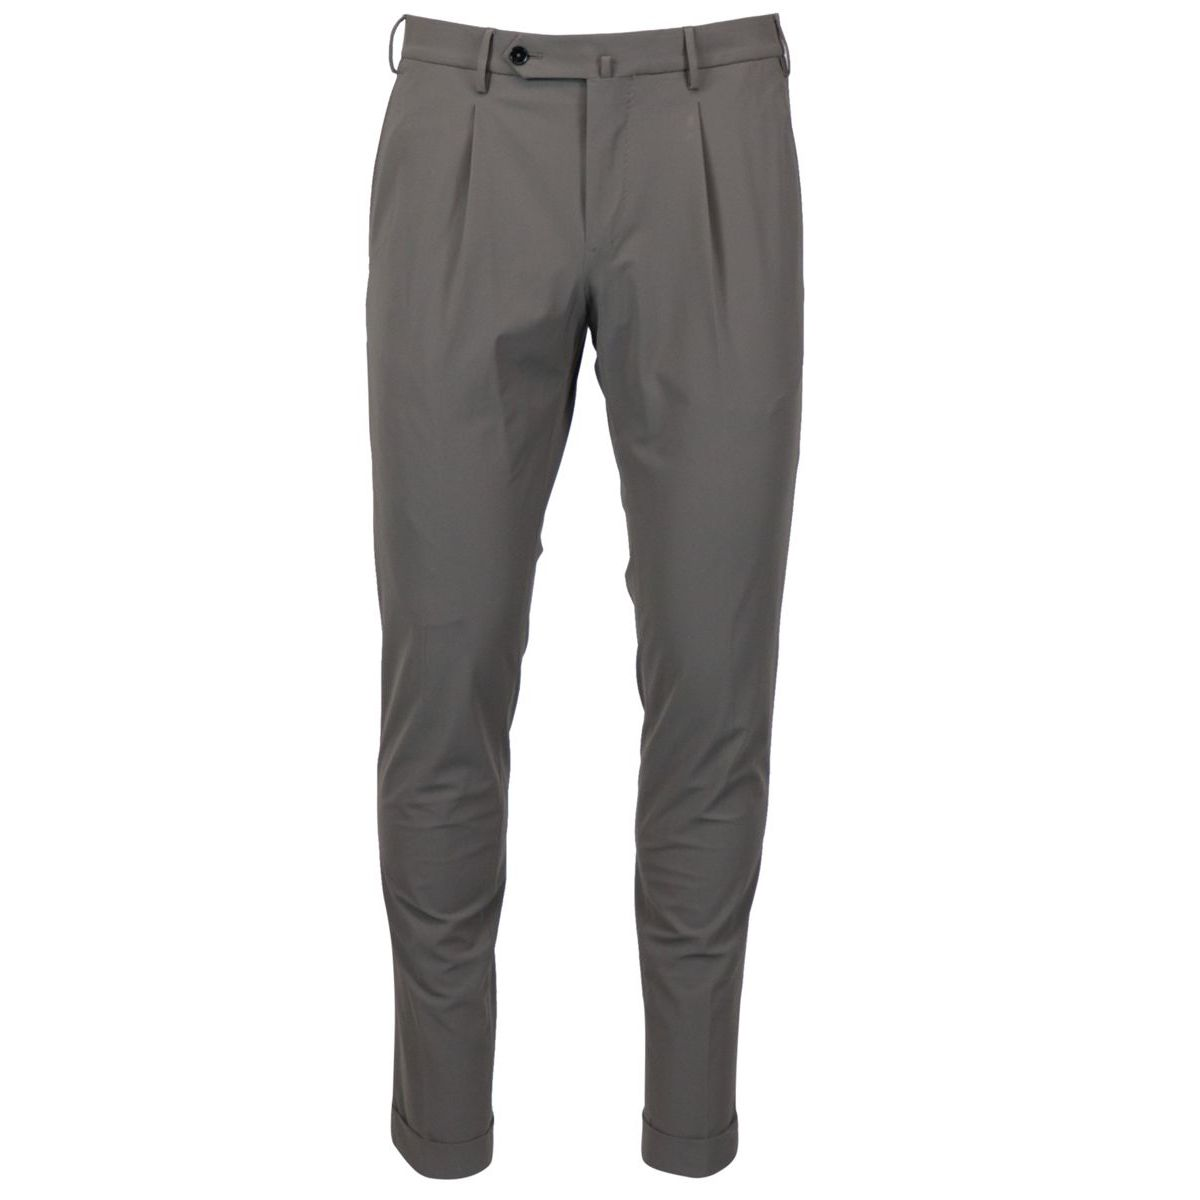 Skinny trousers in technical fabric with pleats and additional side pocket Grey PT TORINO